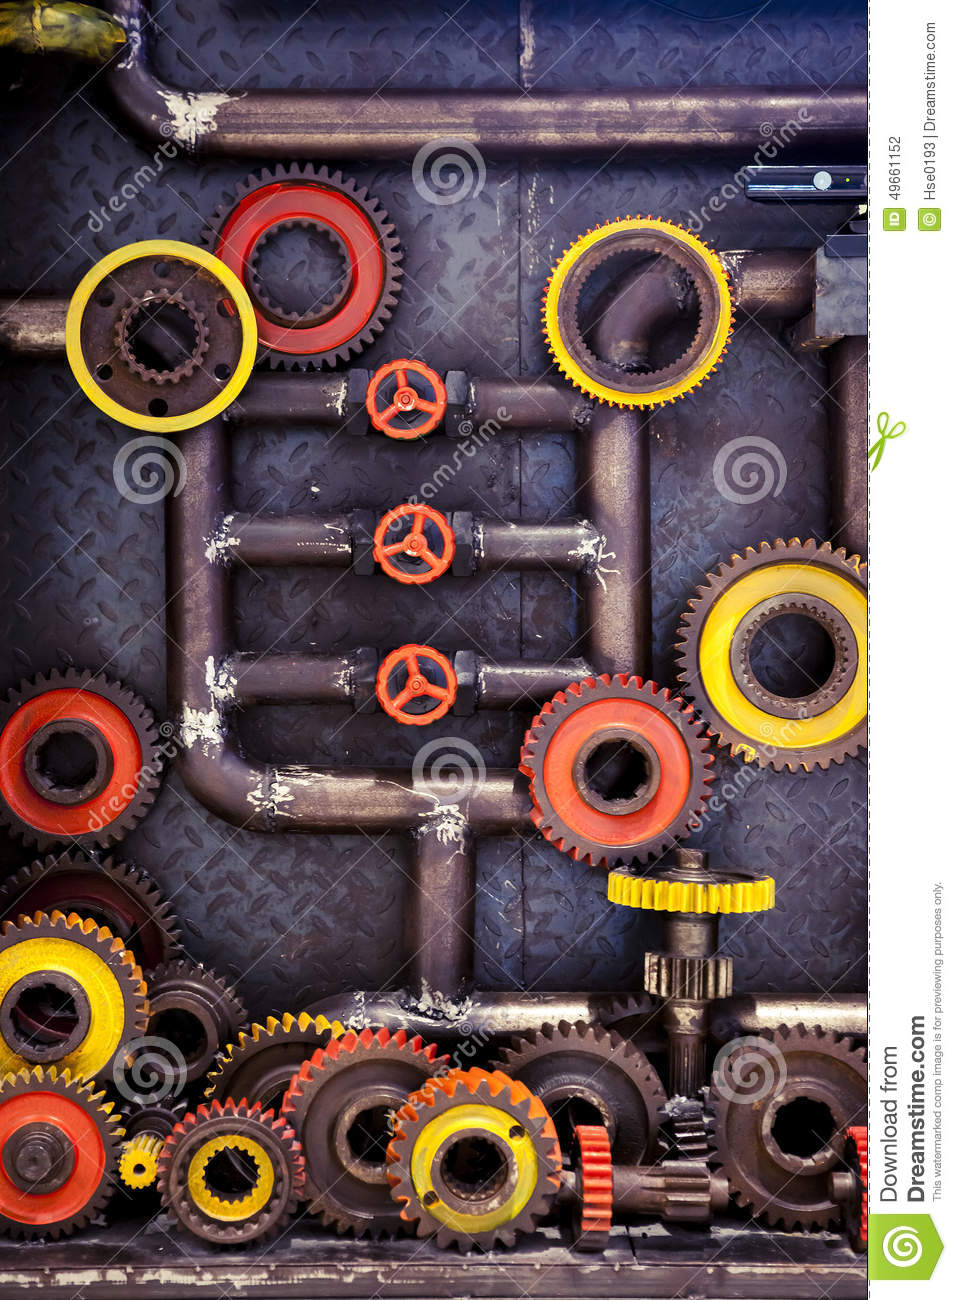 Cogs and pipes